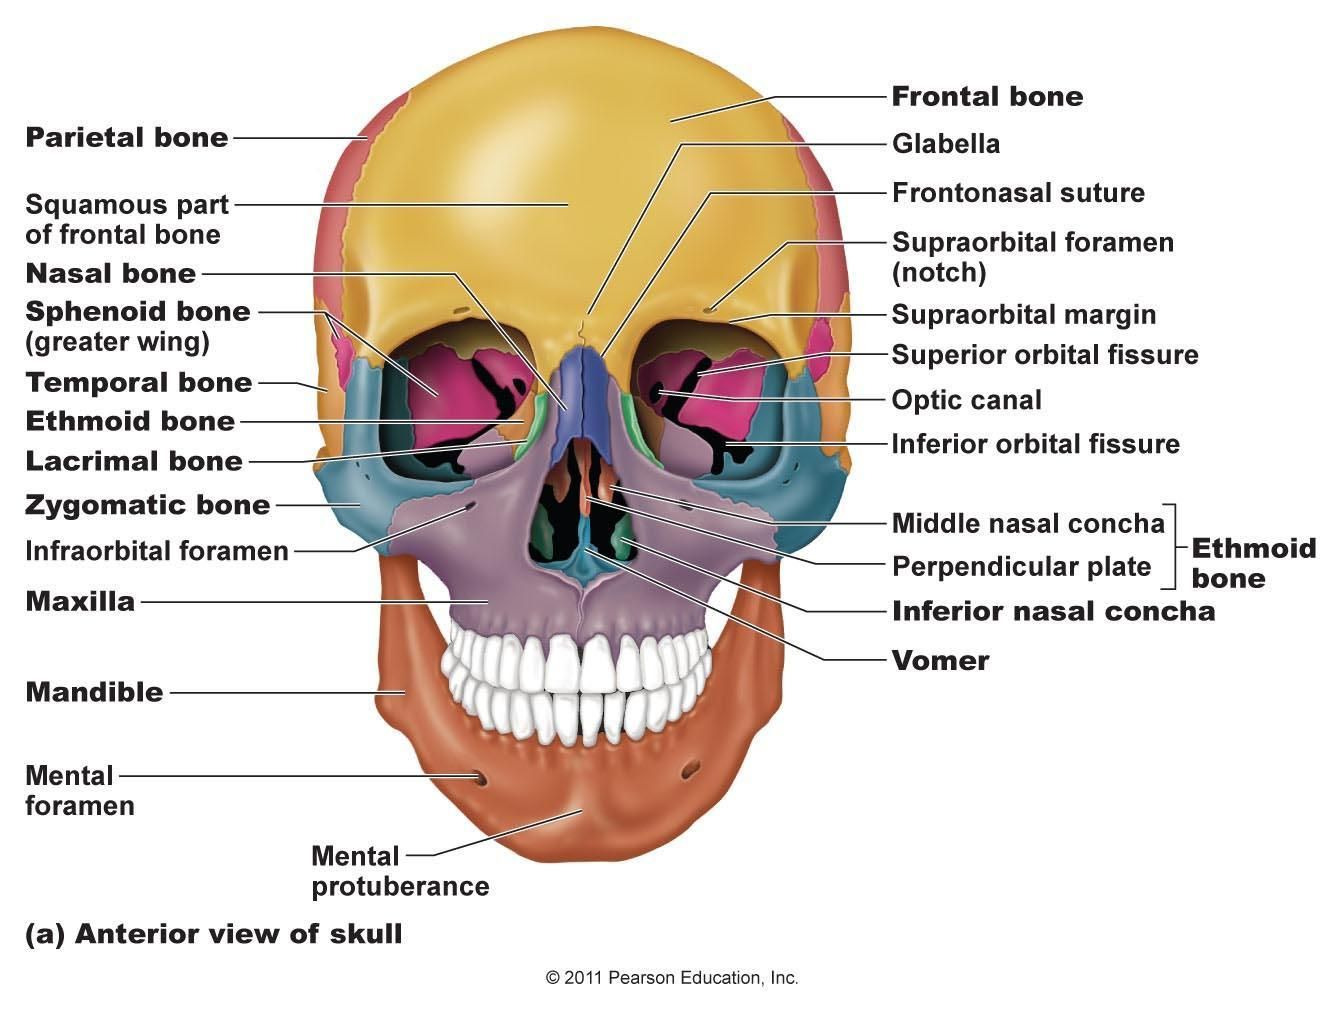 axial skeleton skull diagram hyster forklift wiring study online flashcards and notes for bones including cavities 1 cranial largest liter 2 nasal formed by facial 3